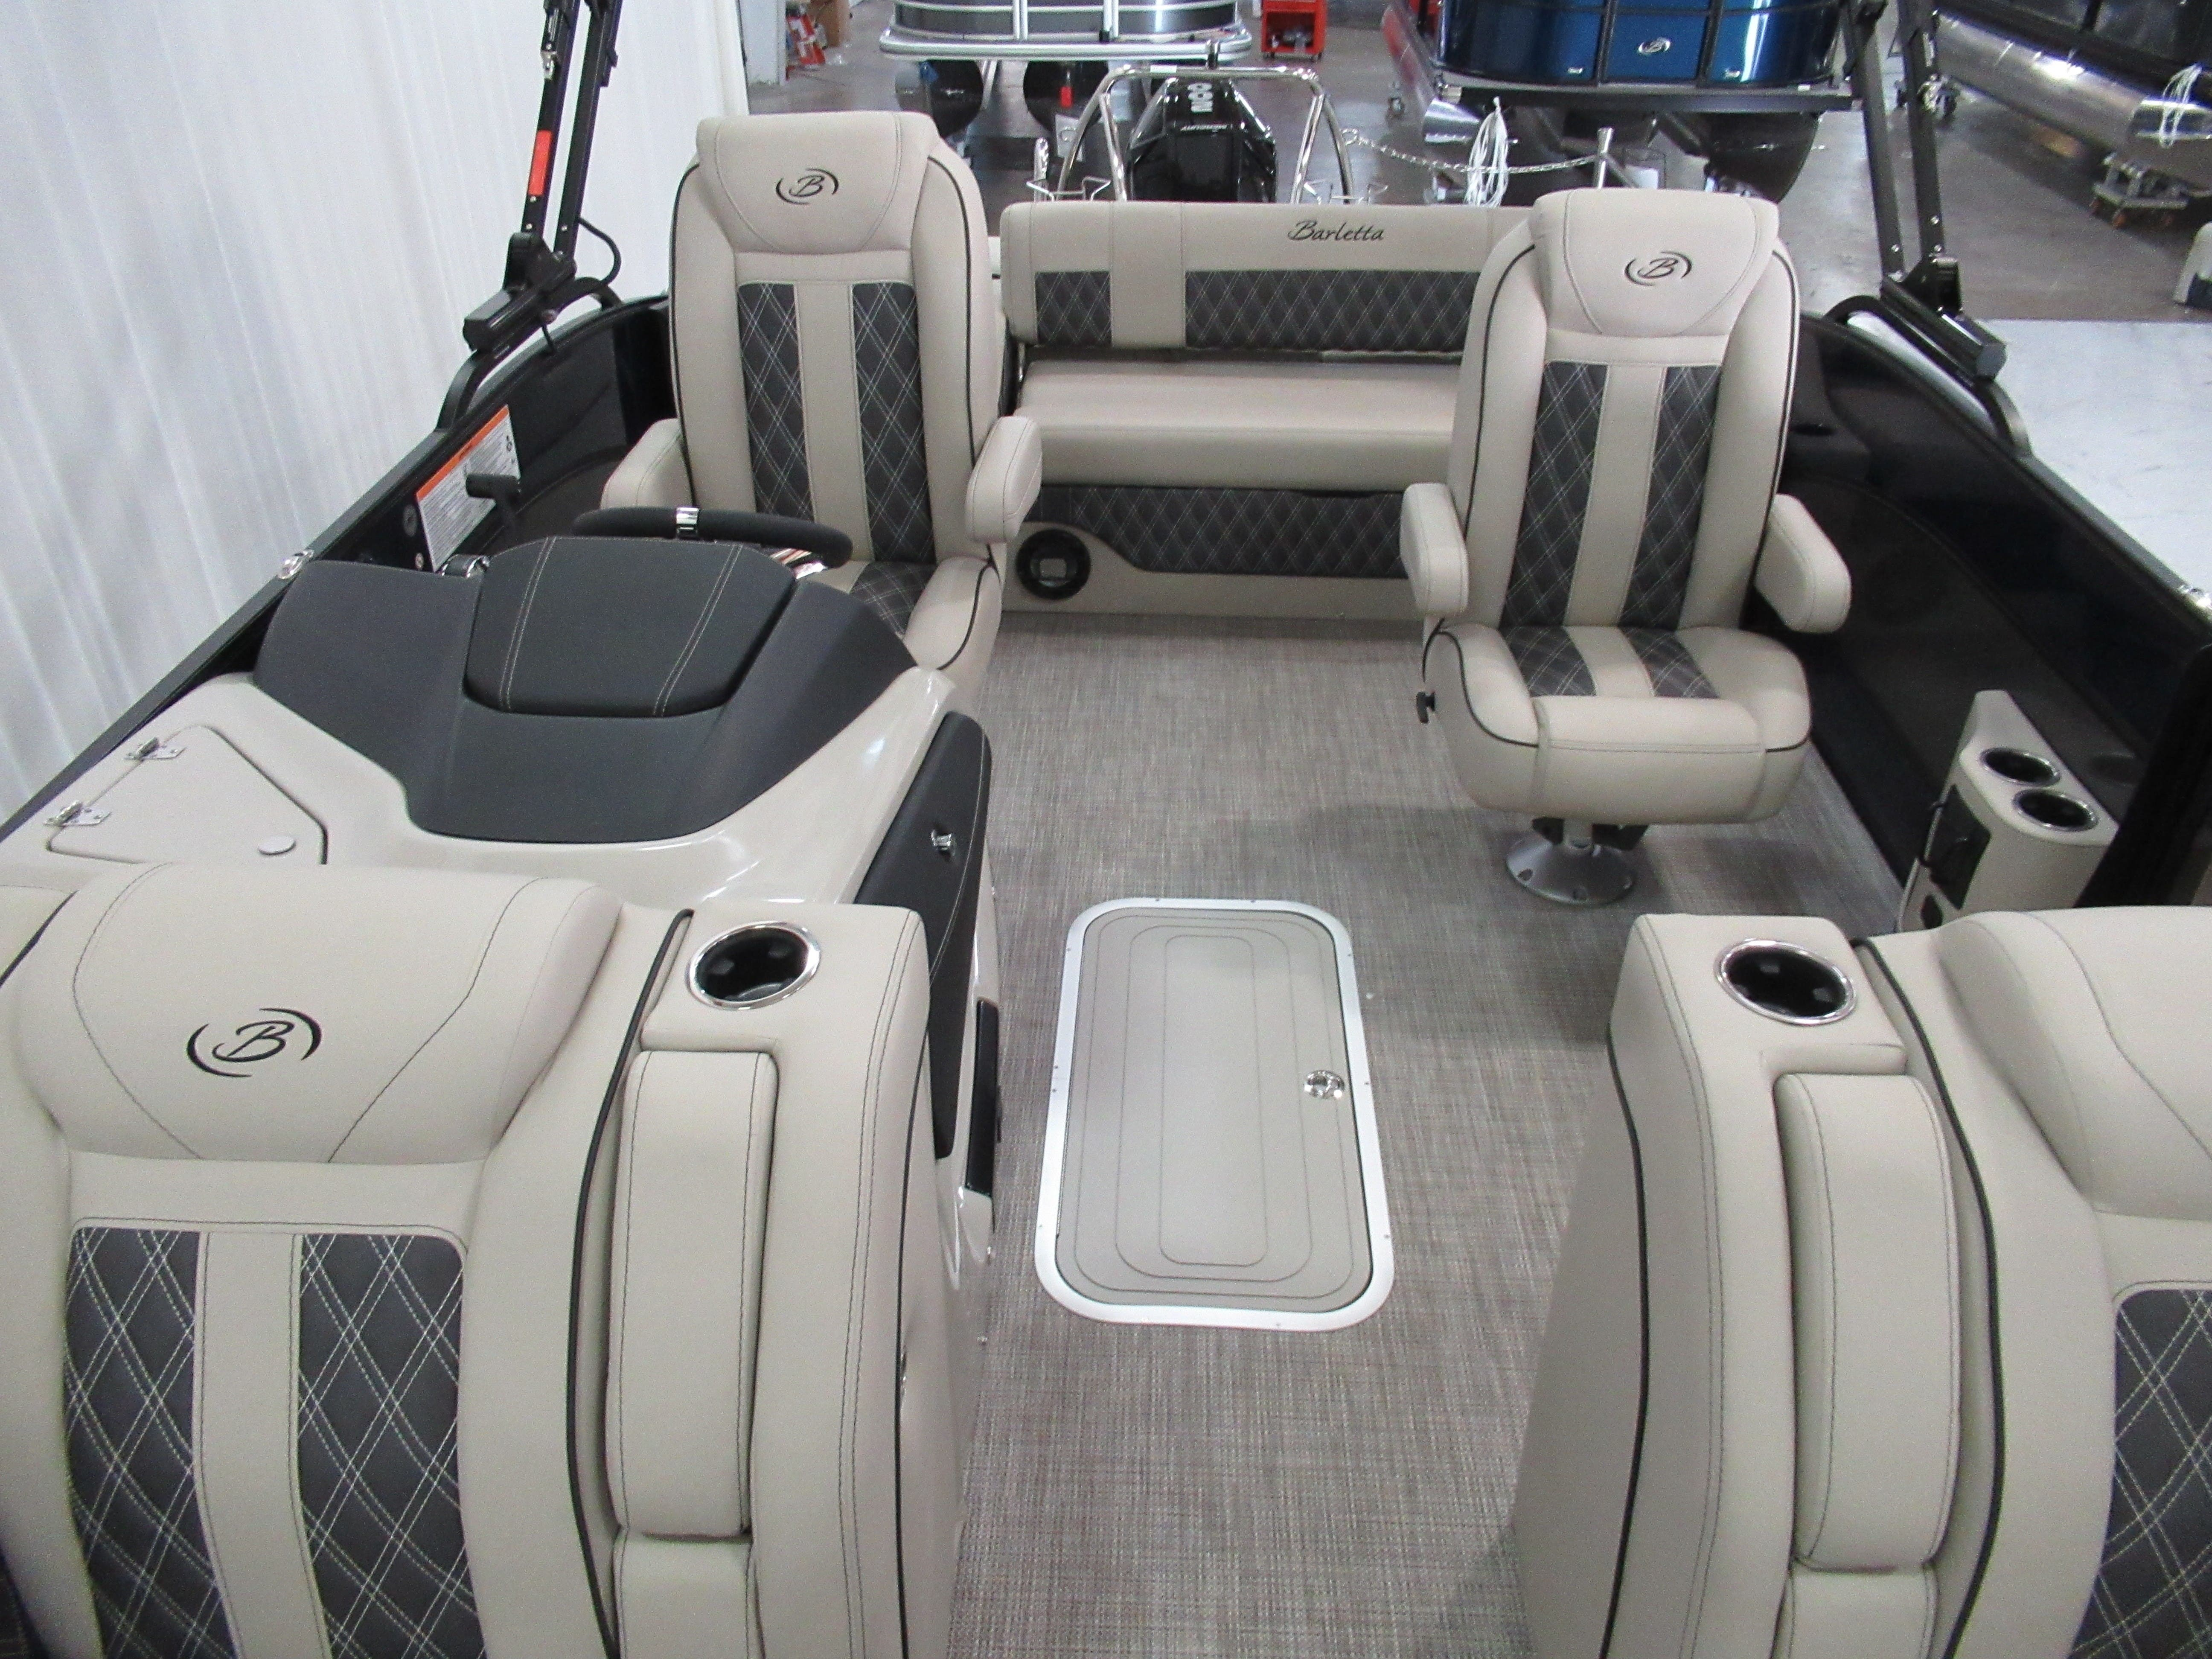 2021 Barletta boat for sale, model of the boat is L-Class & Image # 7 of 12